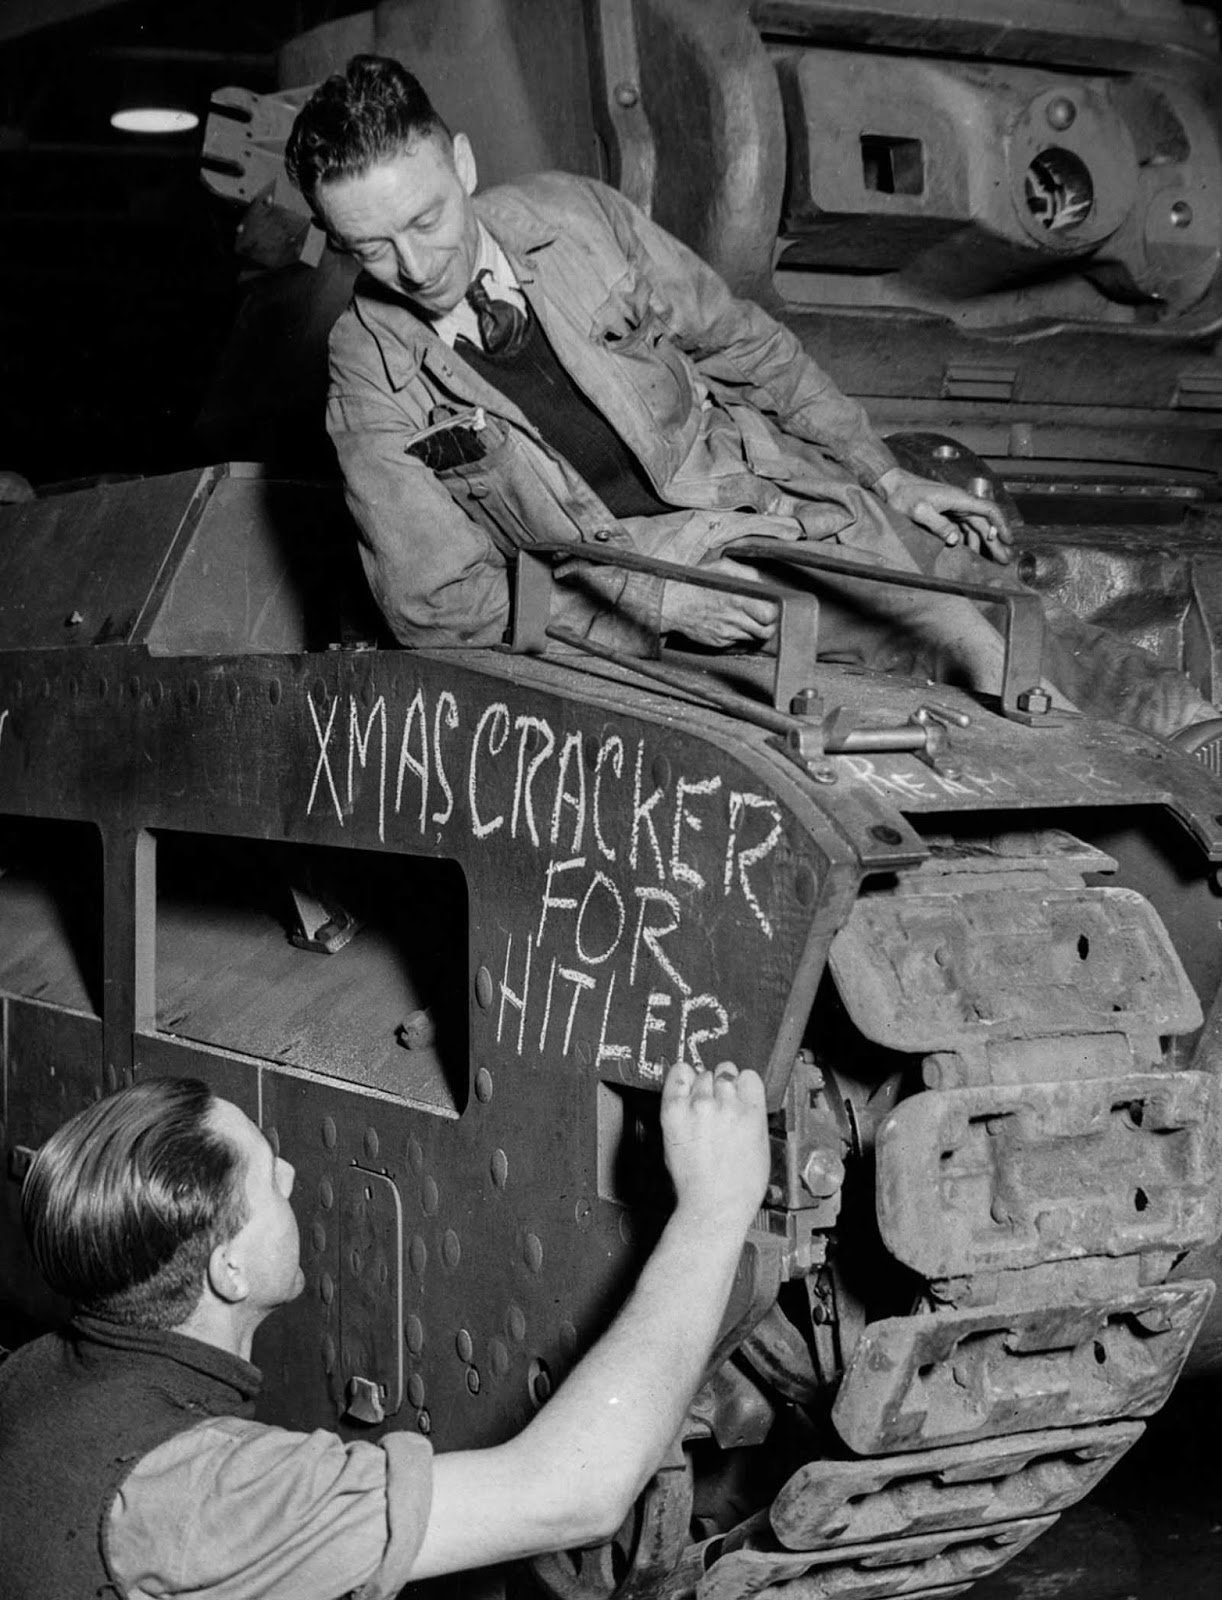 British factory workers leave a message for their adversary. 1941.